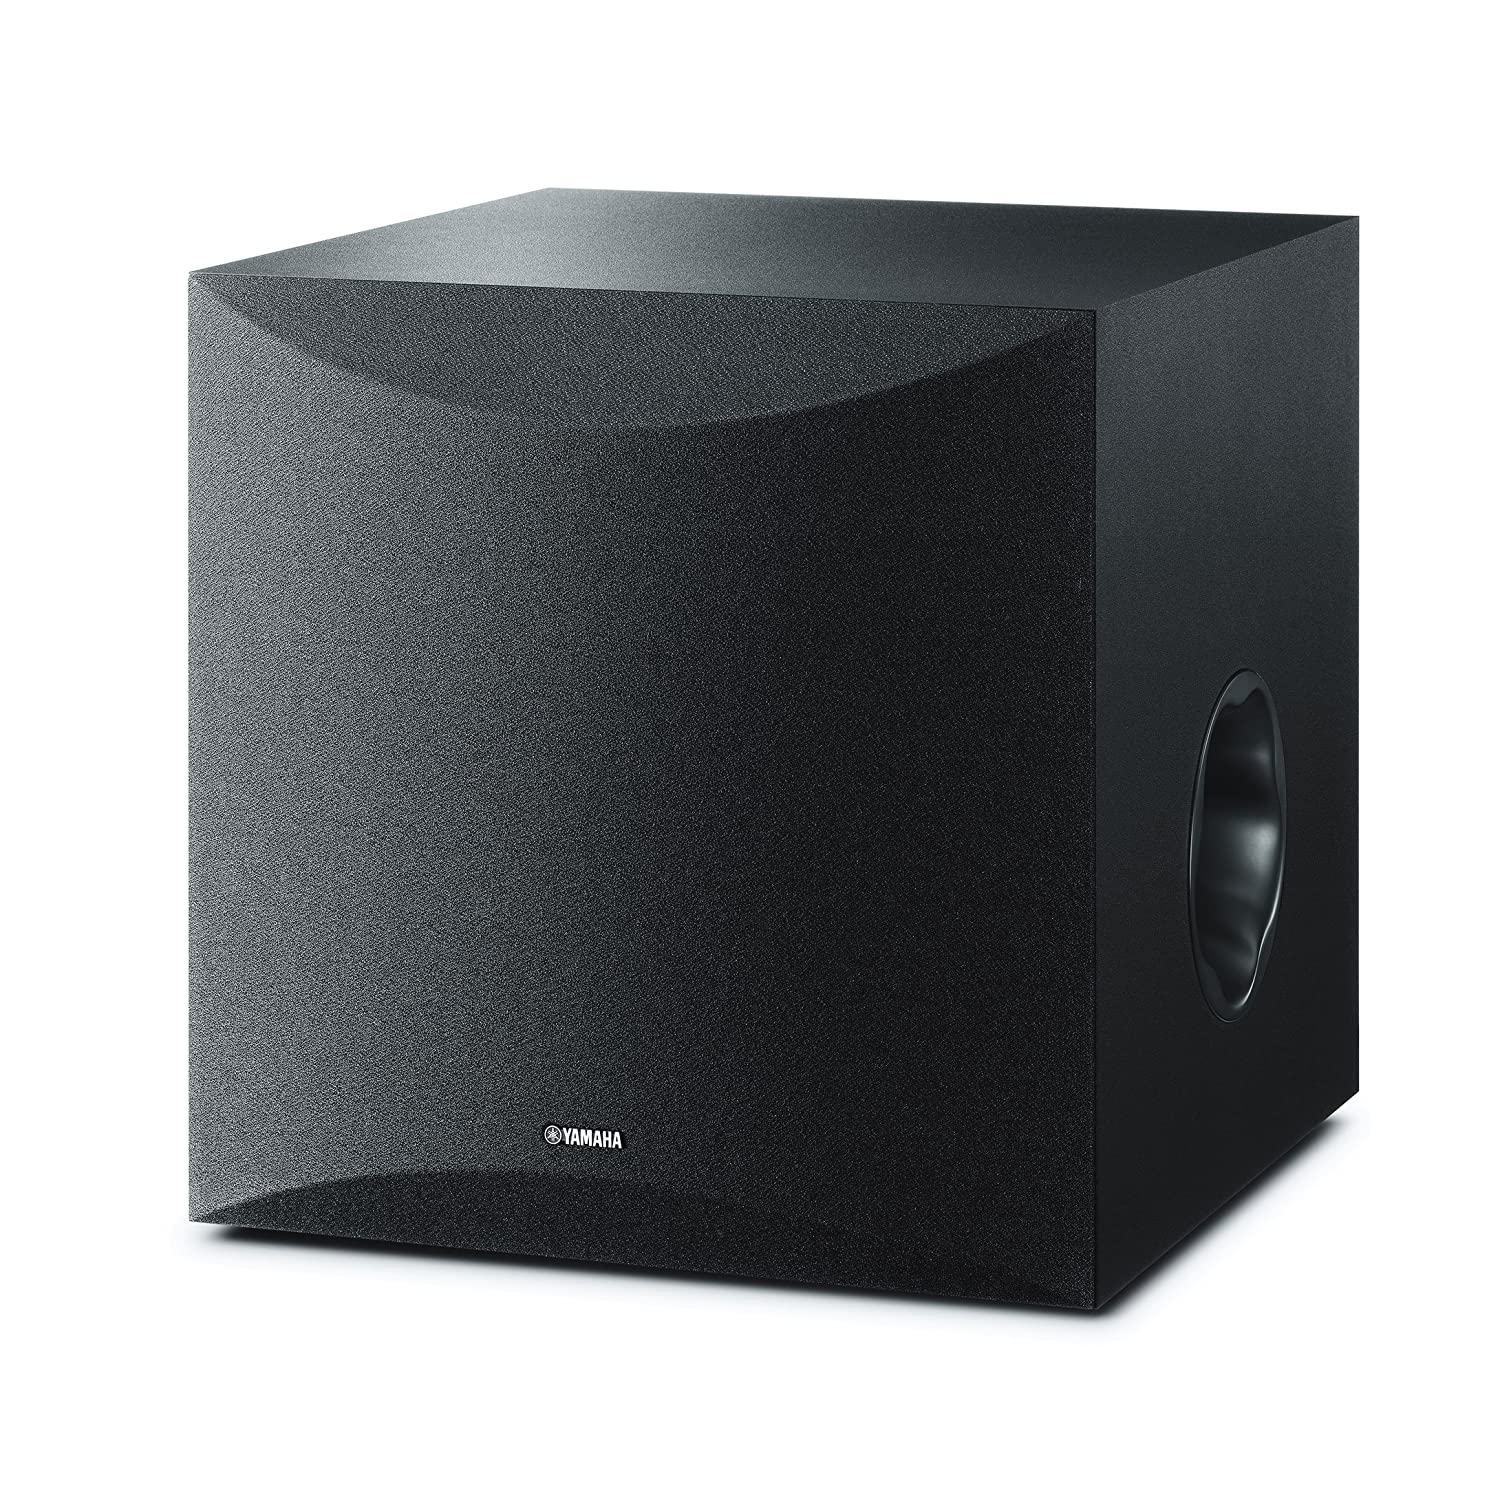 "Yamaha 10"" 100W Powered Subwoofer - Black (NS-SW100BL)"